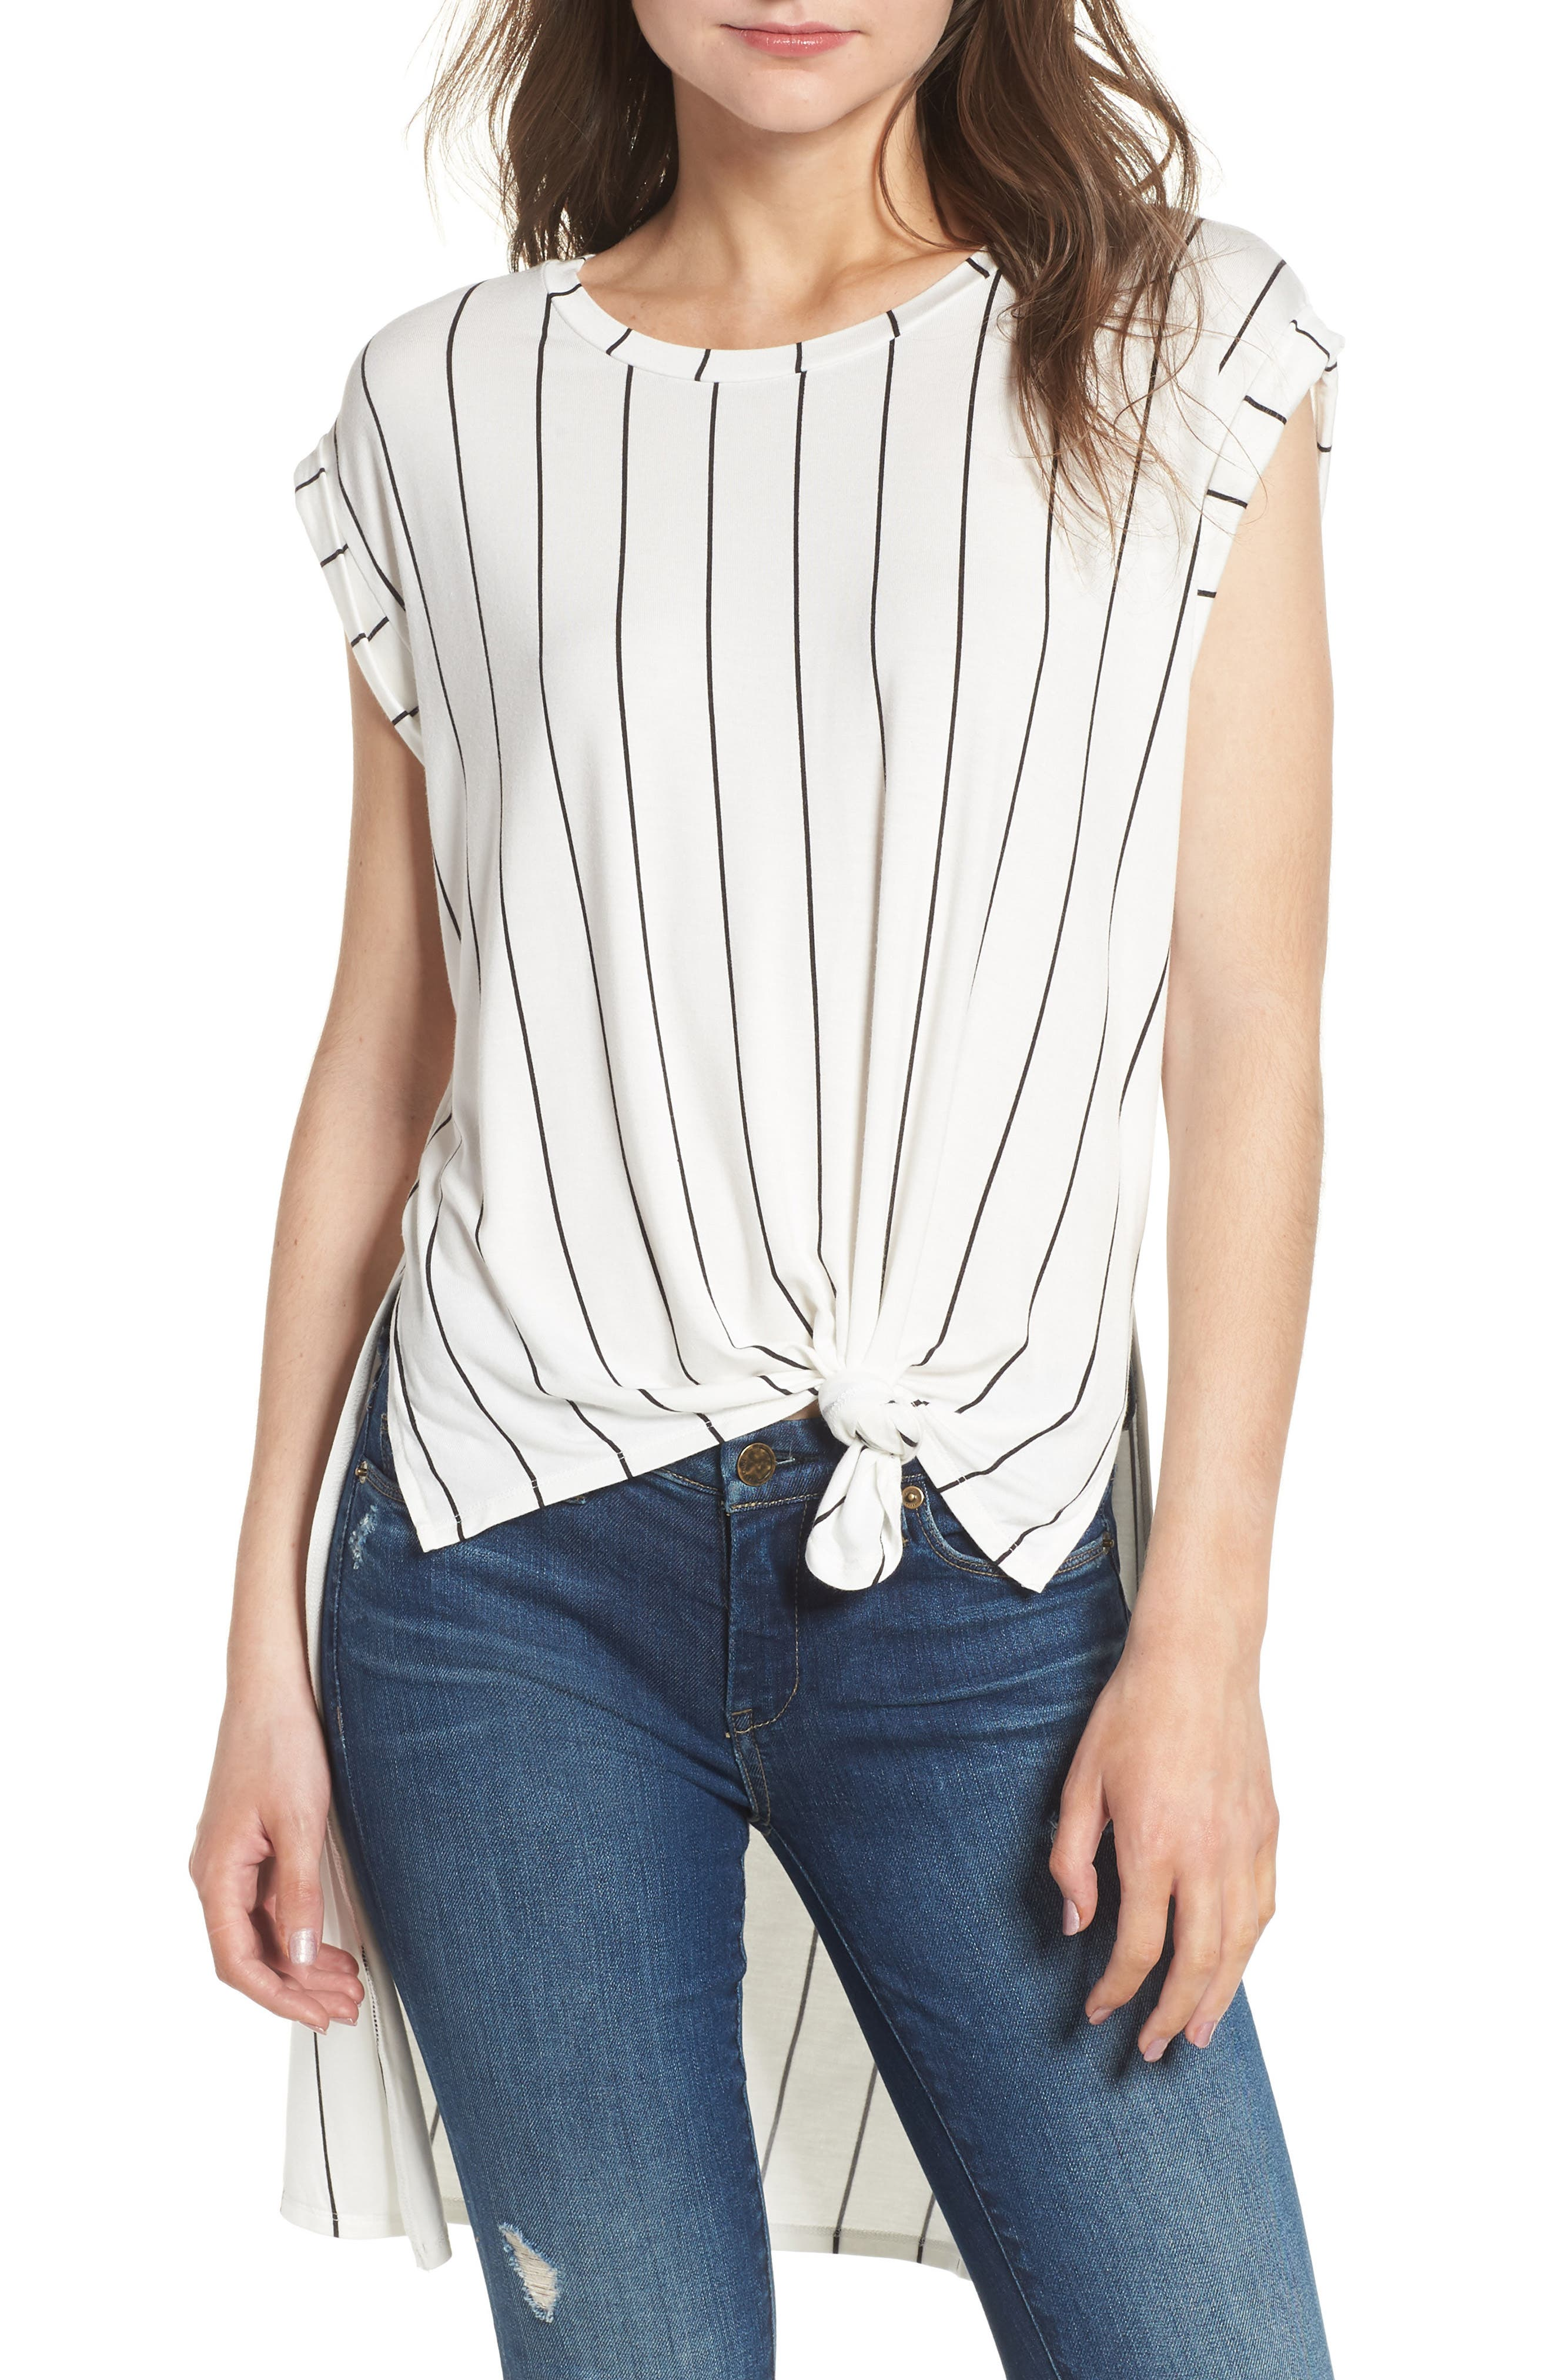 Alternate Image 1 Selected - Love, Fire High/Low Knot Front Top